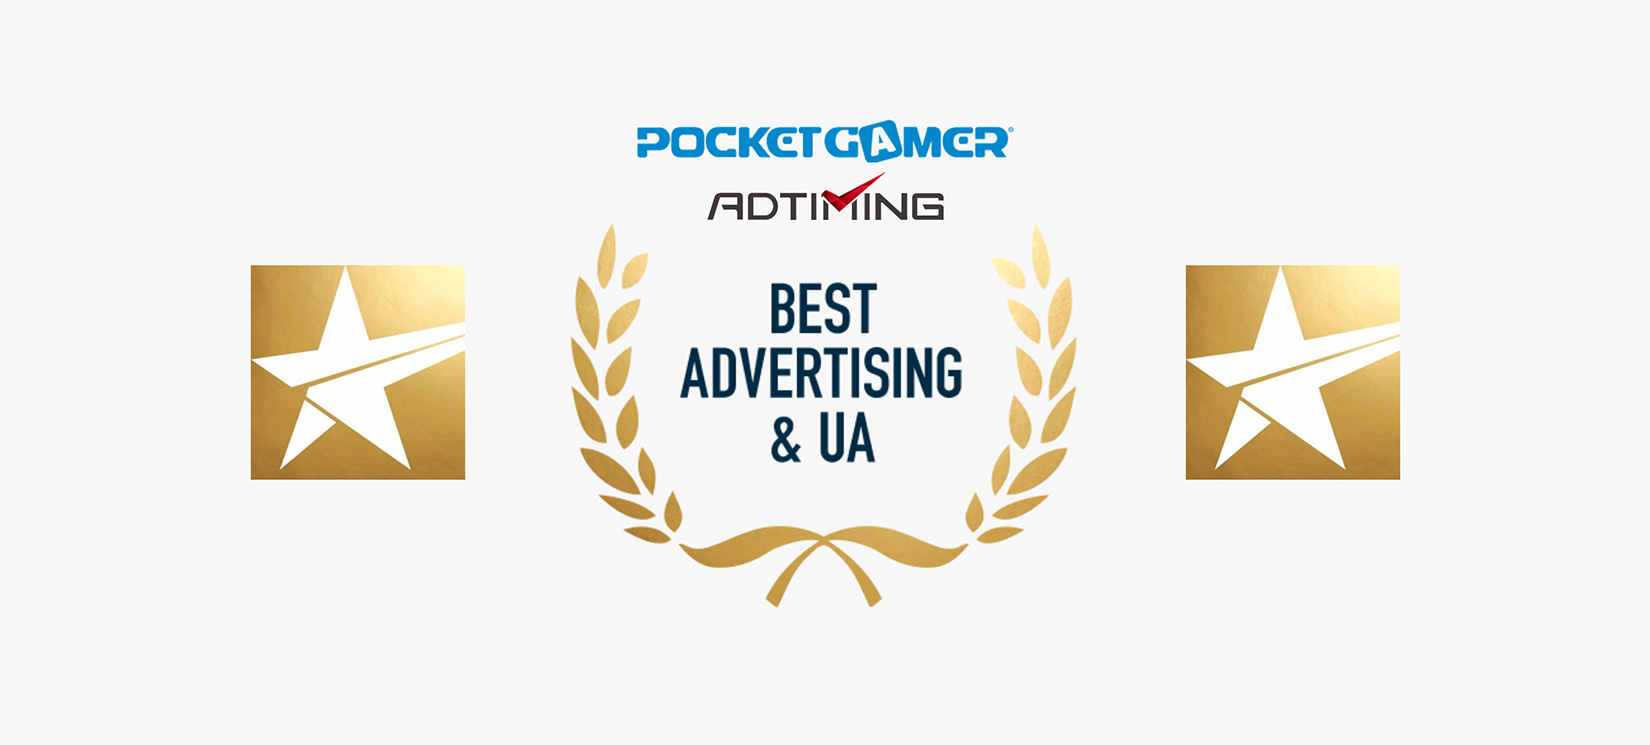 Awarded for Best Advertising and UA by PocketGamer Mobile Awards